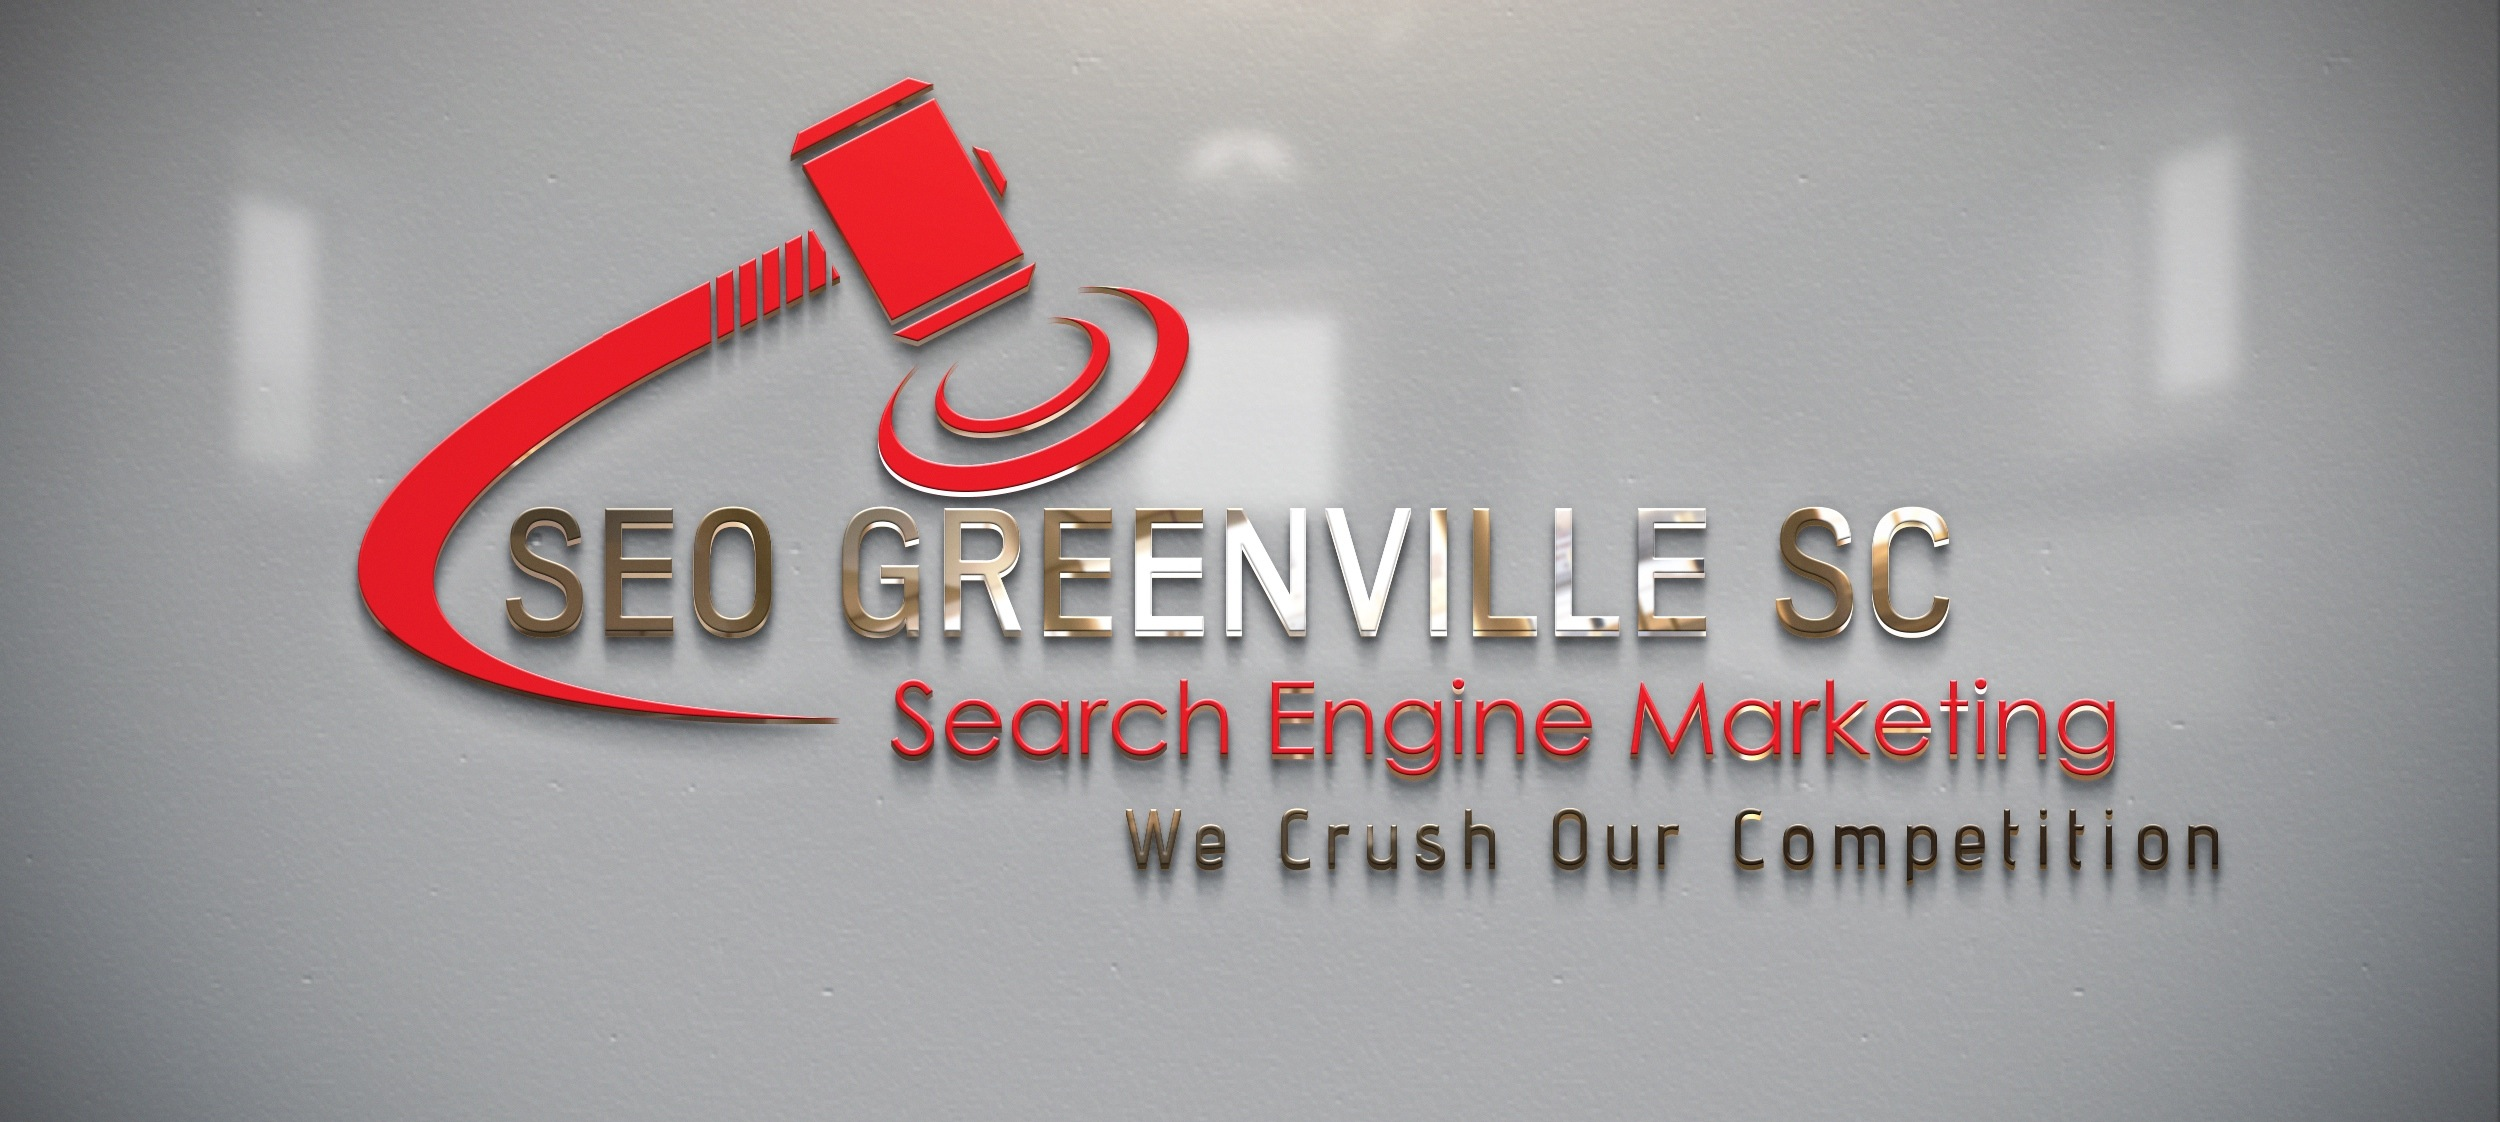 Greenville Seo